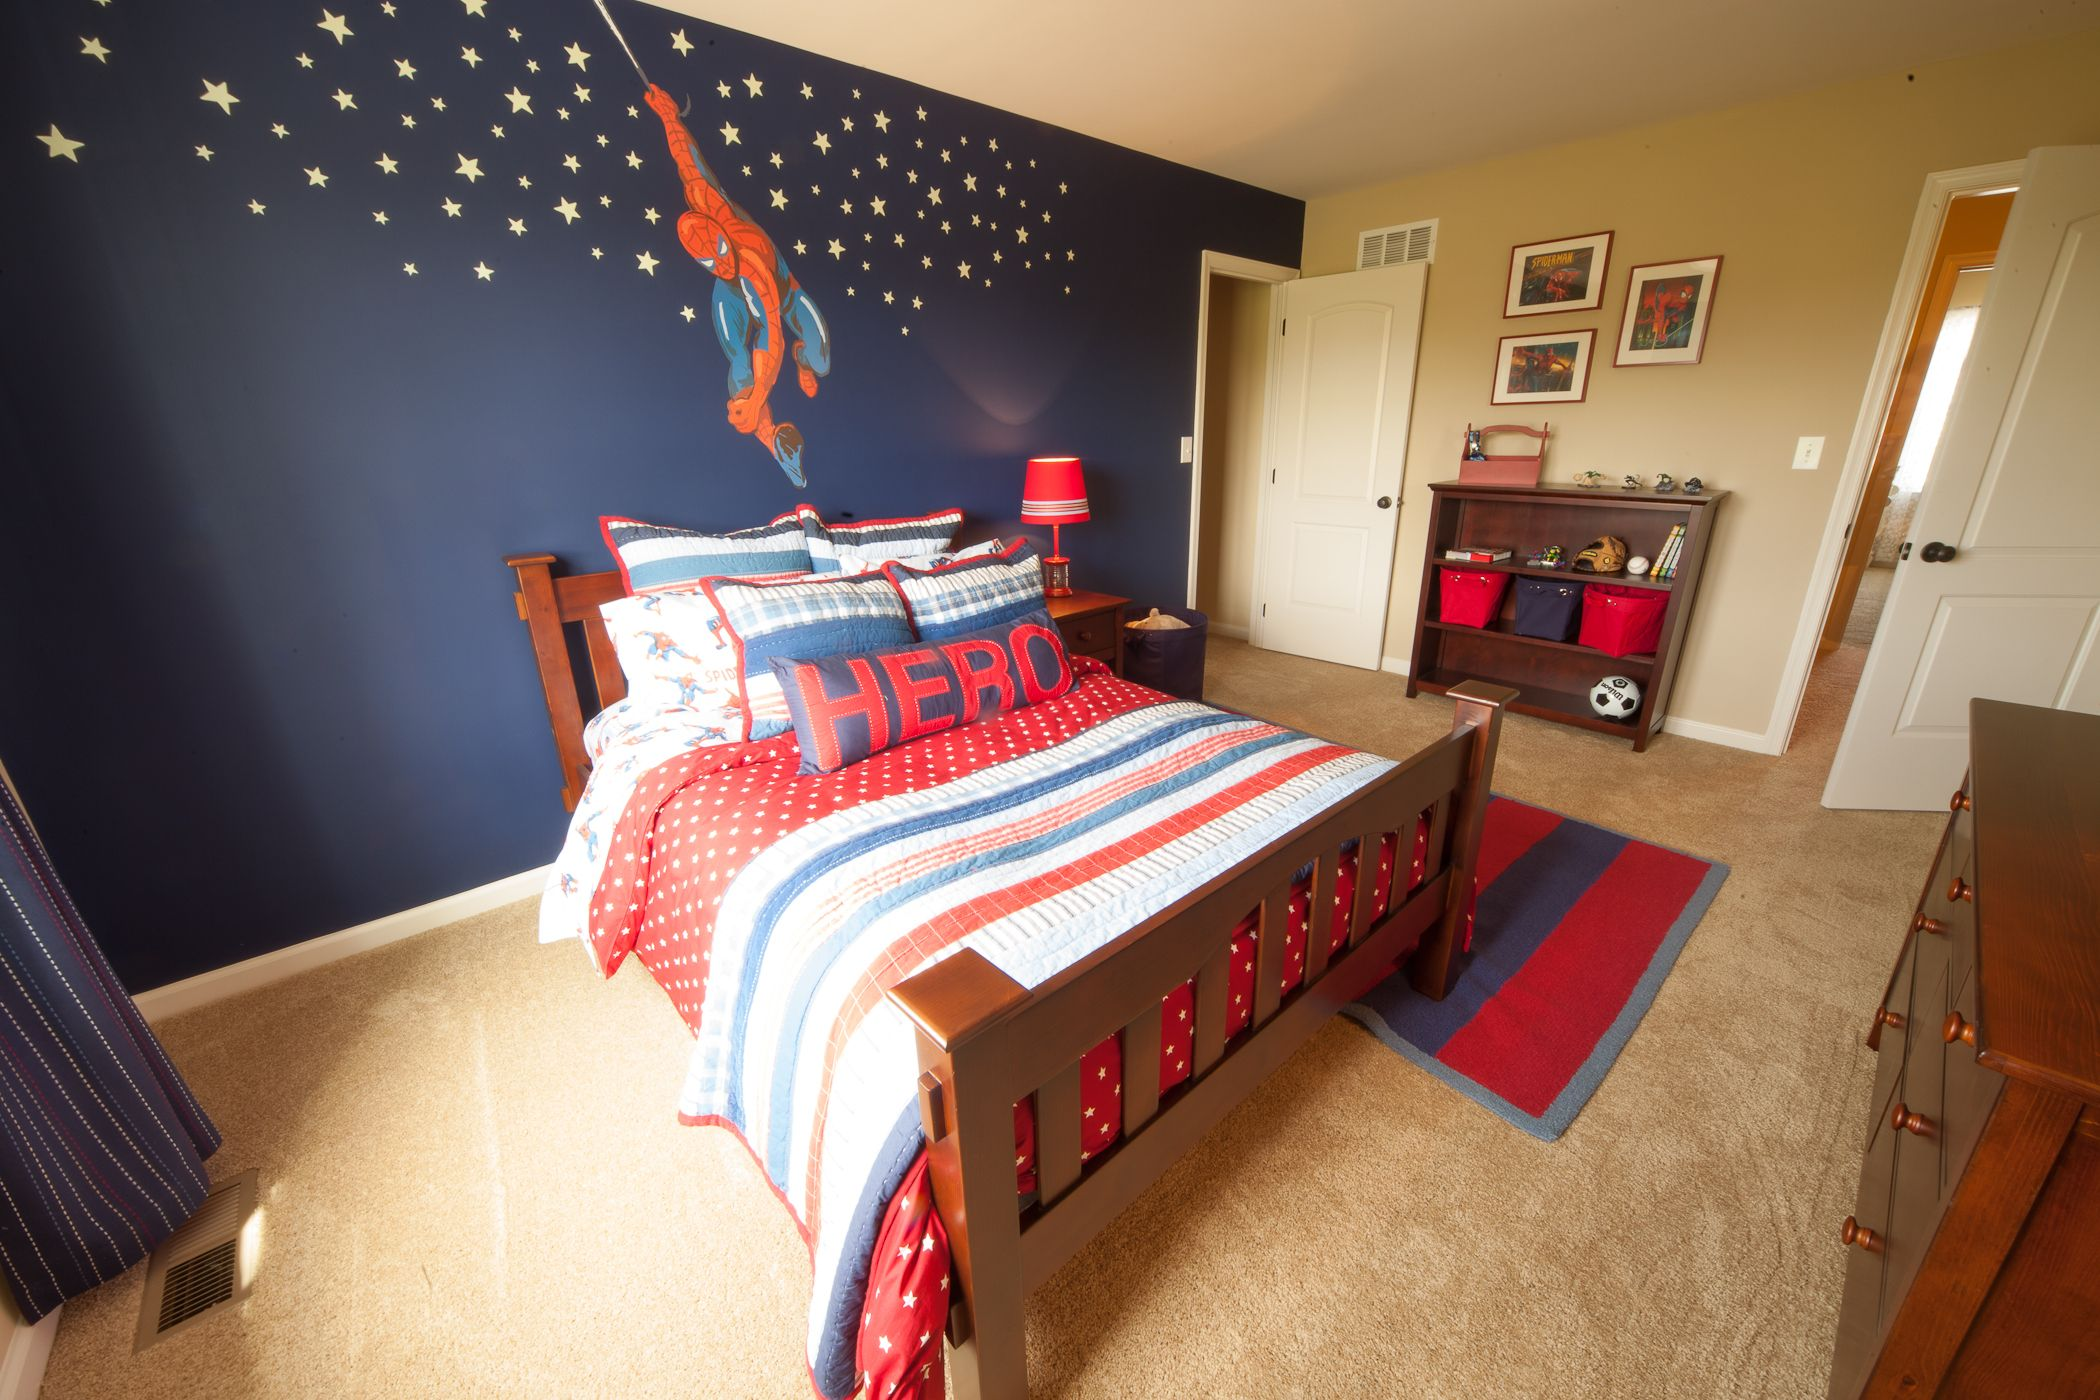 Spiderman Inspired Kids Room By Tuskes Homes Cool Kids Bedrooms Boy Room White Carpet Bedroom